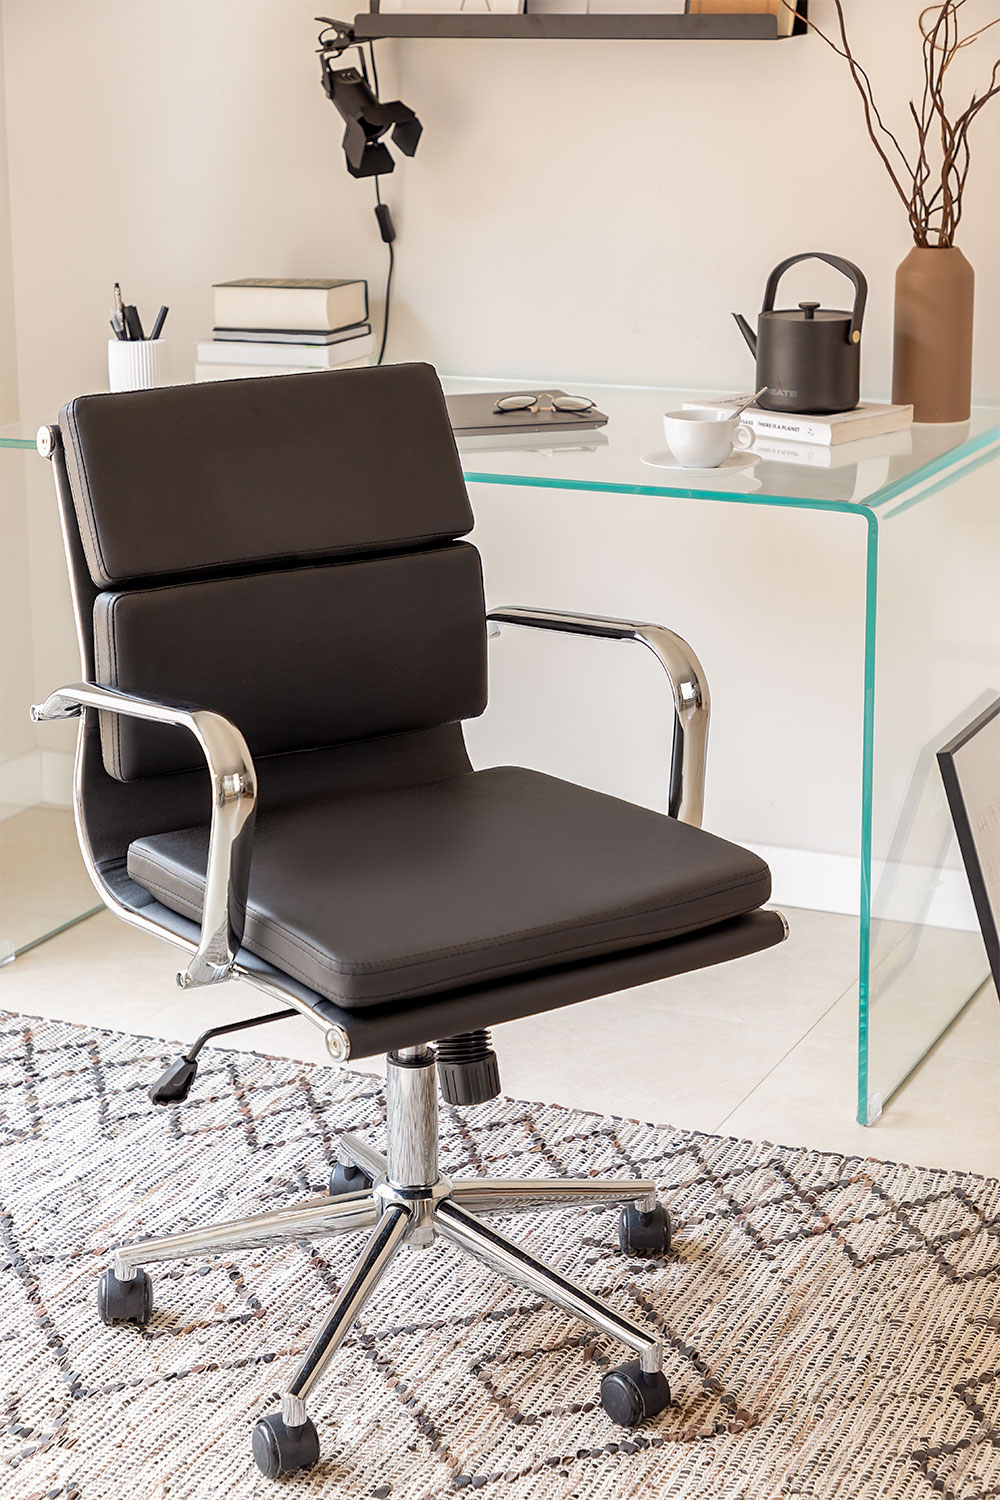 Office Chair on caster Fhöt, gallery image 1